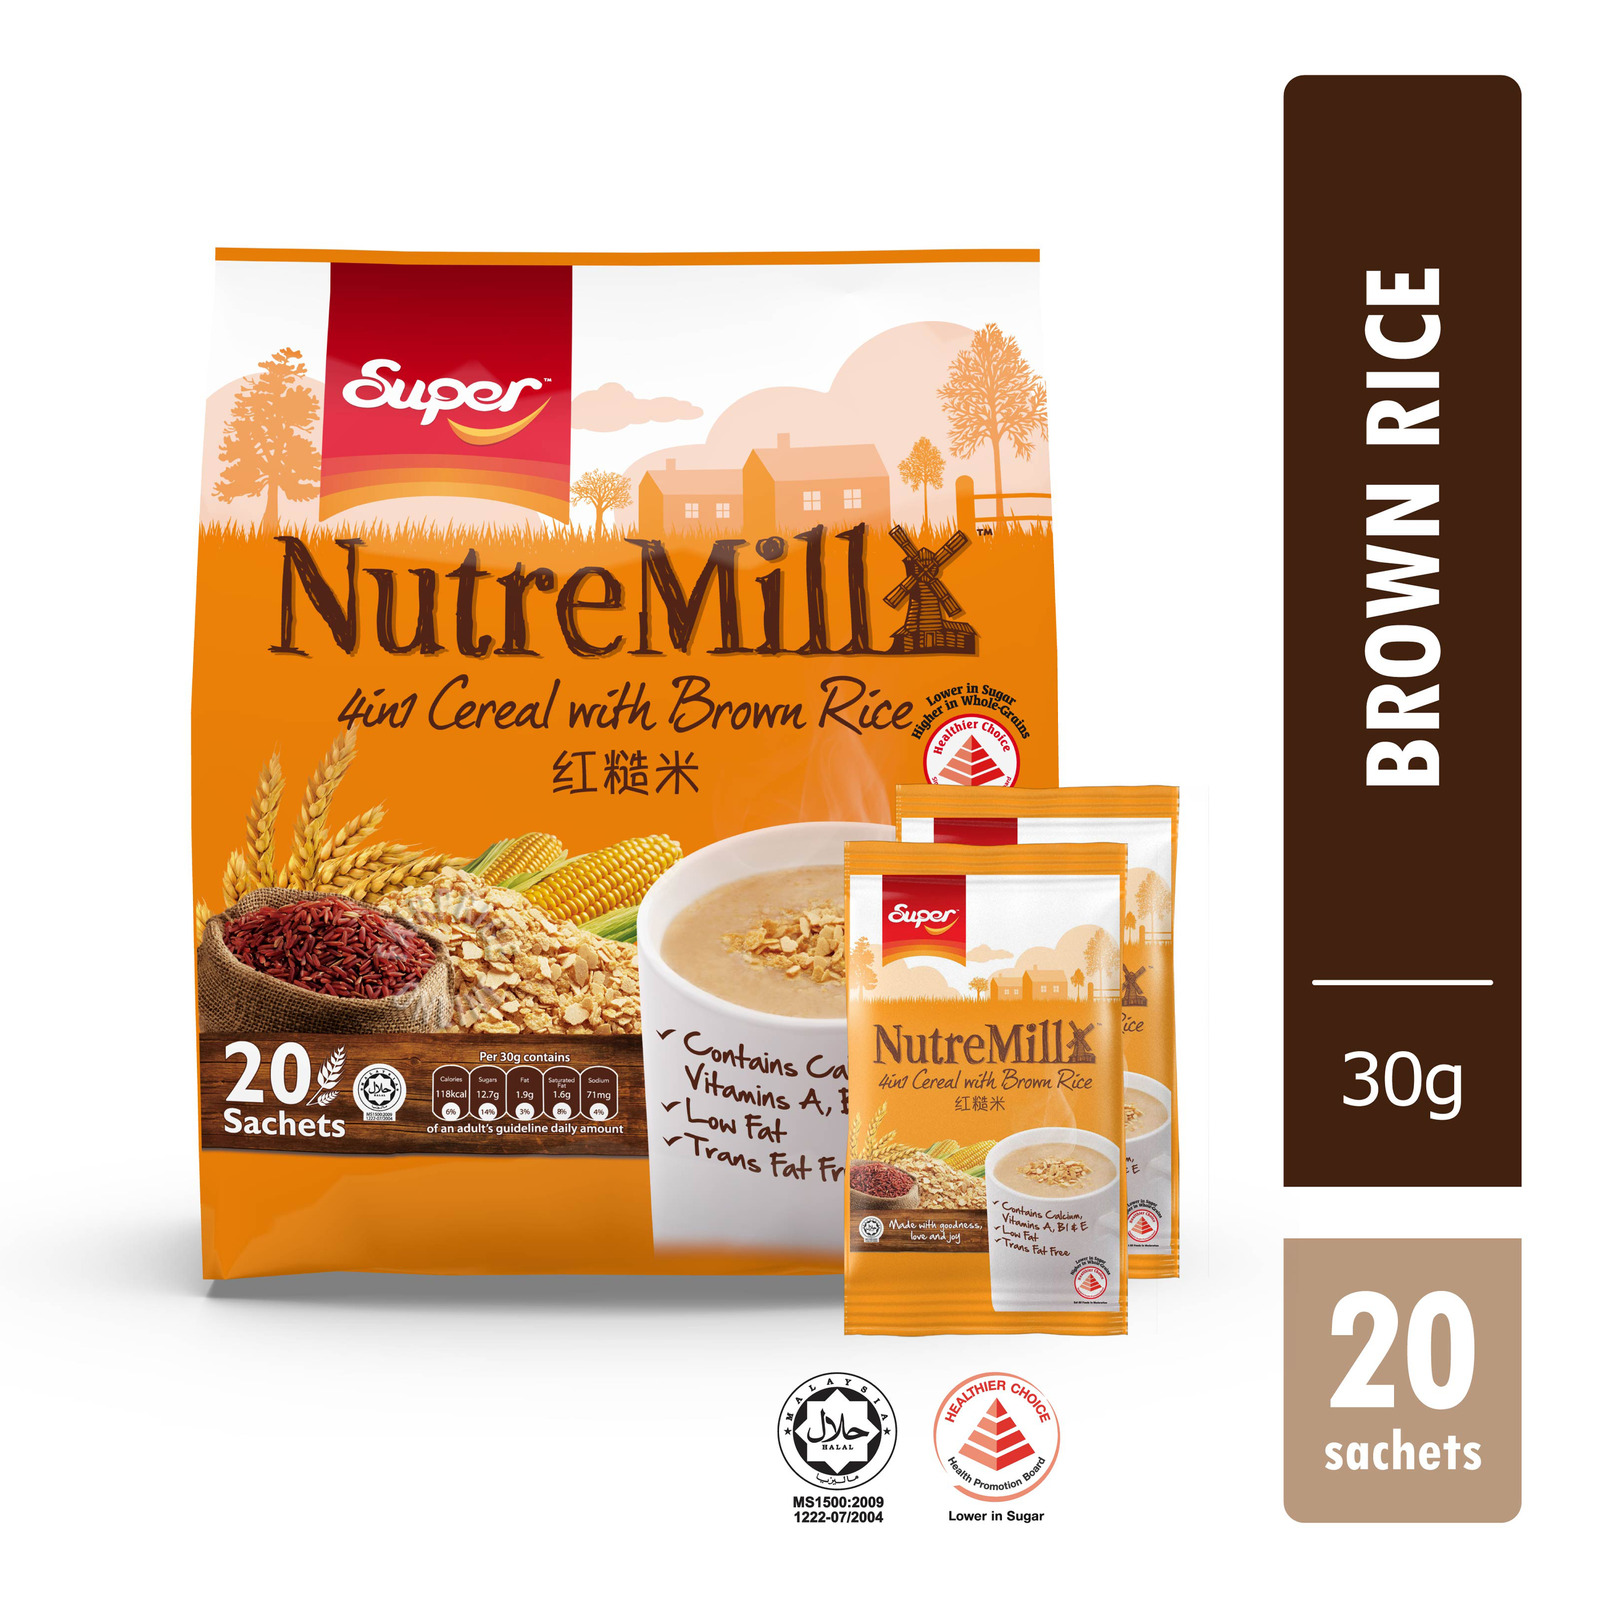 Super NutreMill 4 in 1 Instant Cereal with Brown Rice